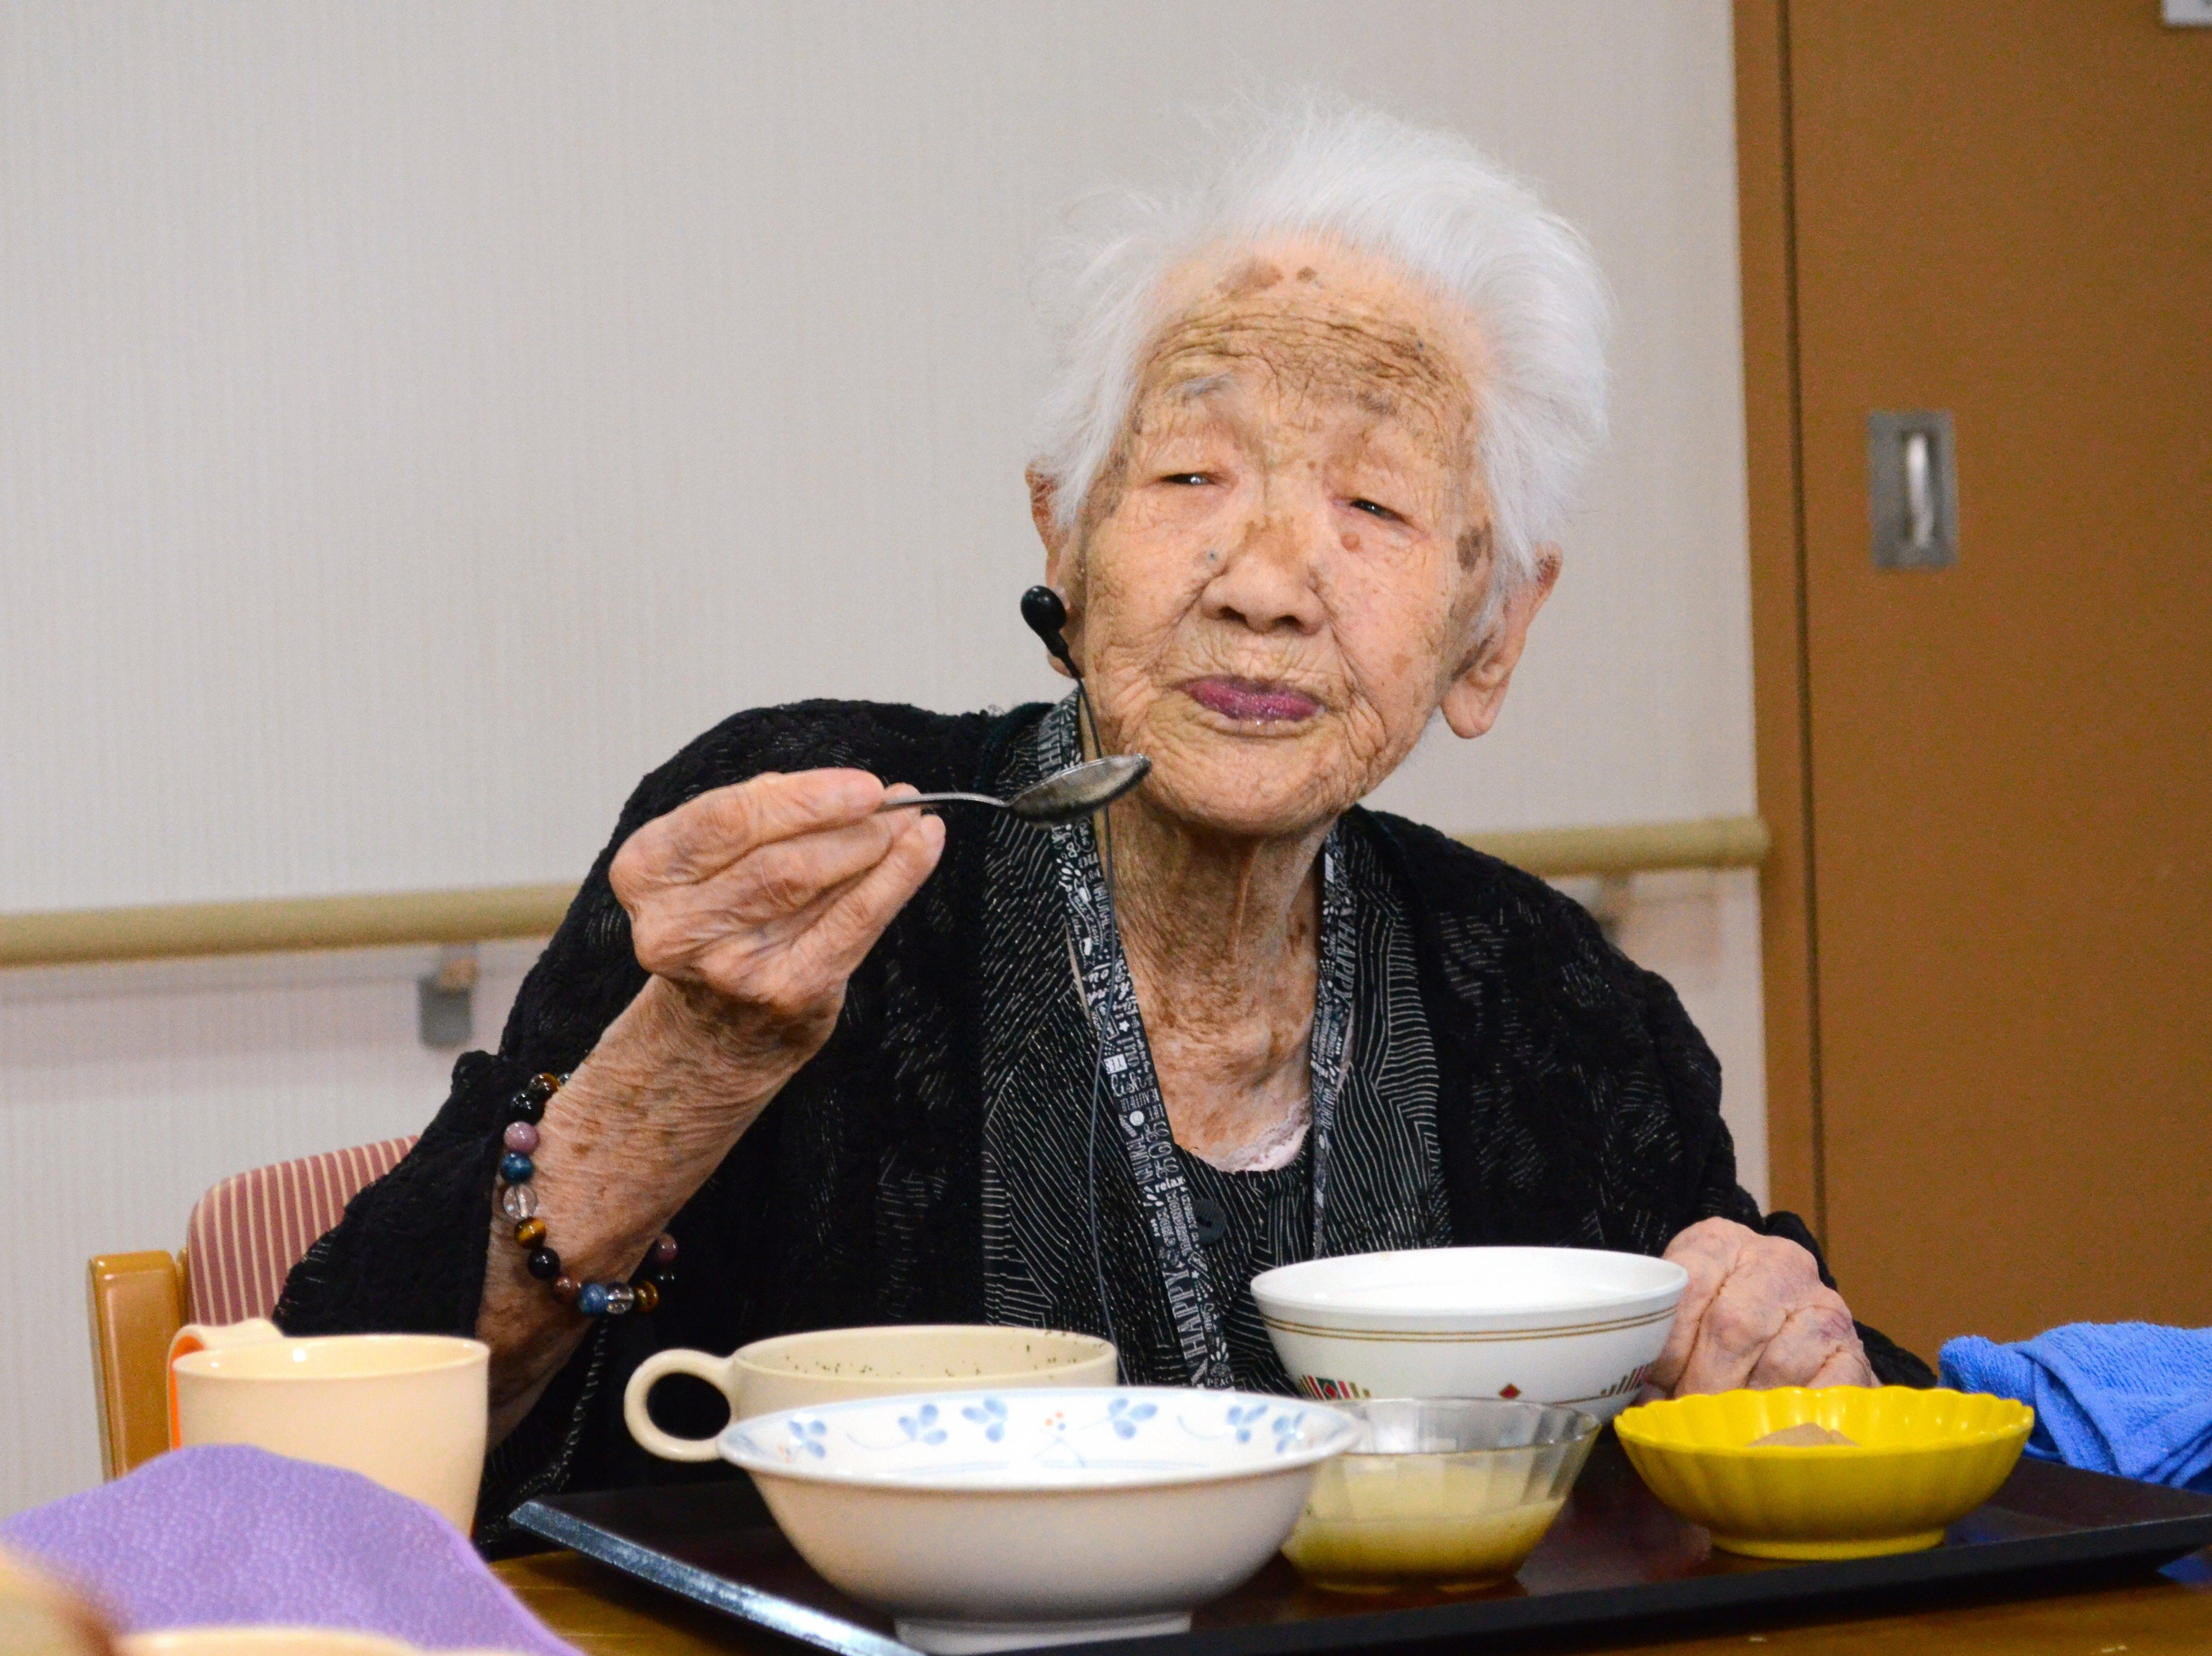 Japan's oldest person Kane Tanaka, 115, has lunch at a nursing home on July 27, 2018 in Fukuoka, Japan. World's oldest person Chiyo Miyako, 117, died on July 21, makes Tanaka becomes Japan's oldest person.